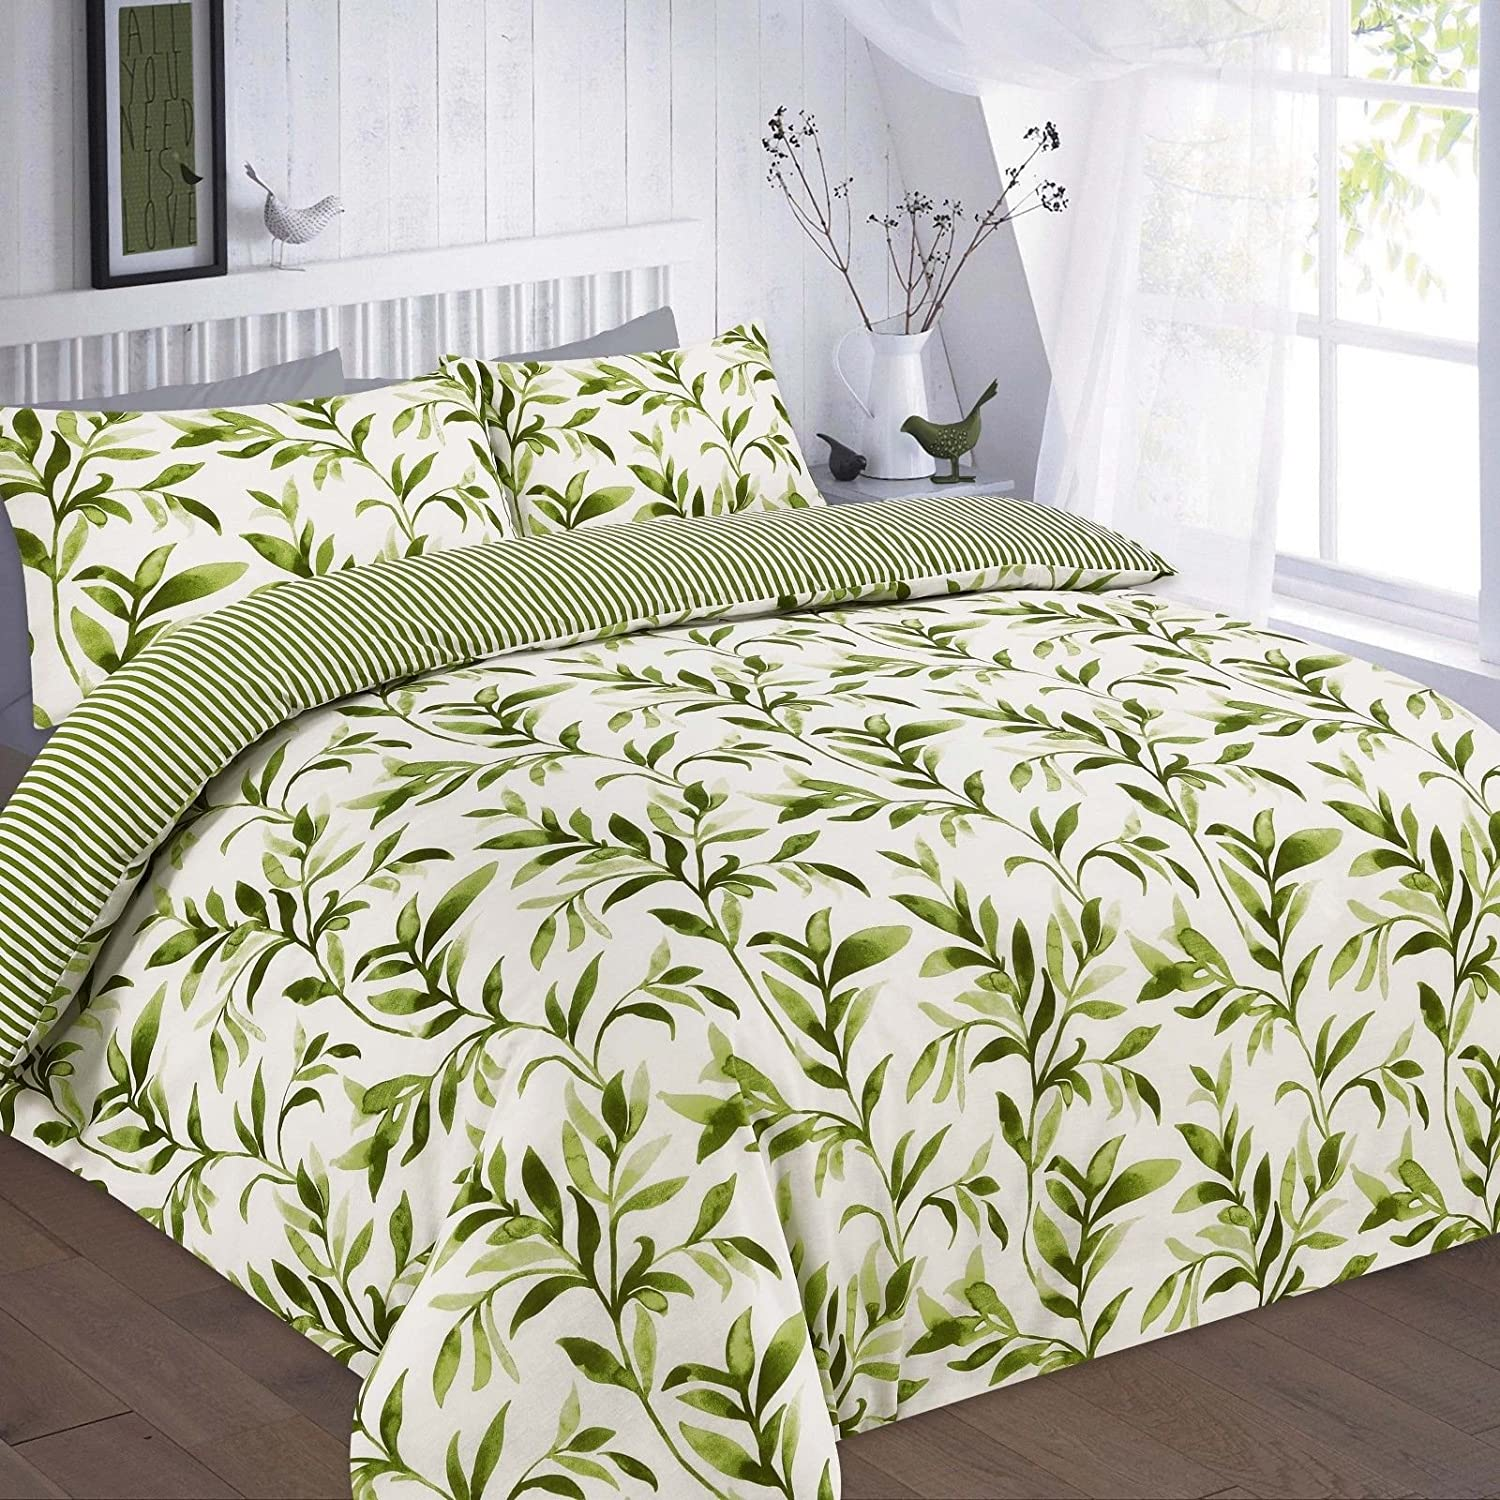 Weed Duvet Cover Cannabis Leaf Duvet set Bedding Pillowcase All Sizes Available